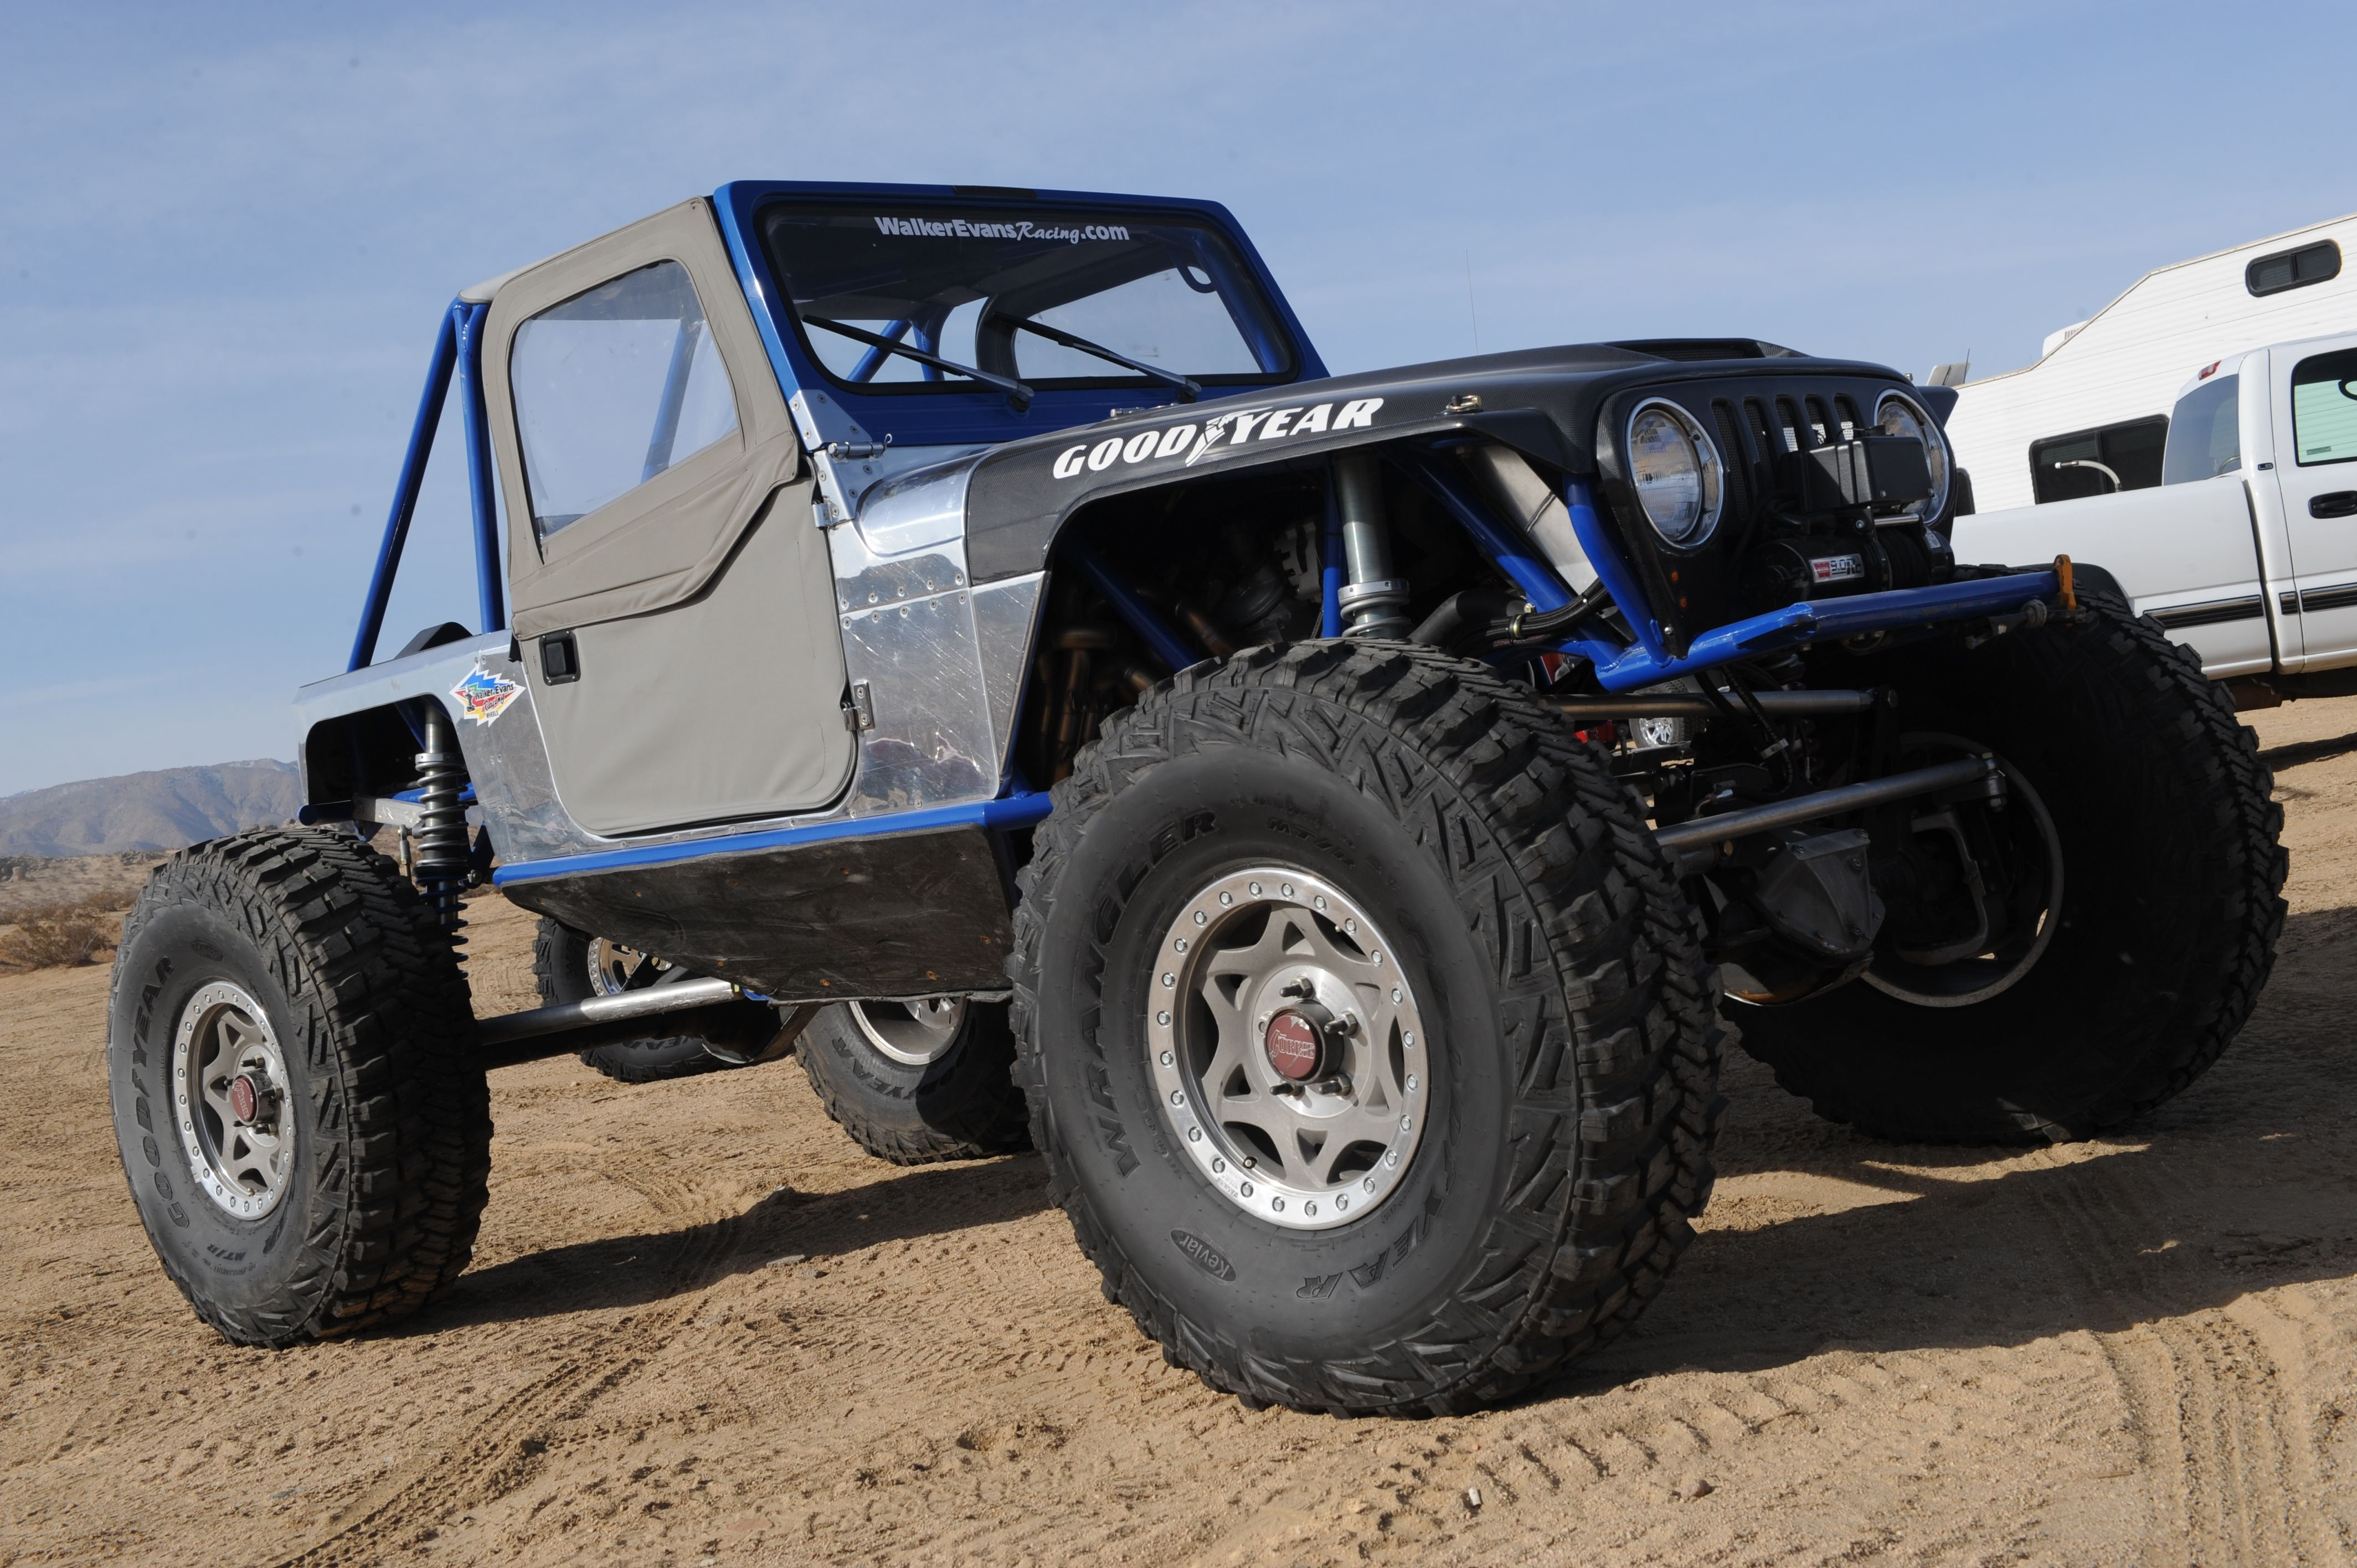 Wrangler MTR Tires made with Kevlar®